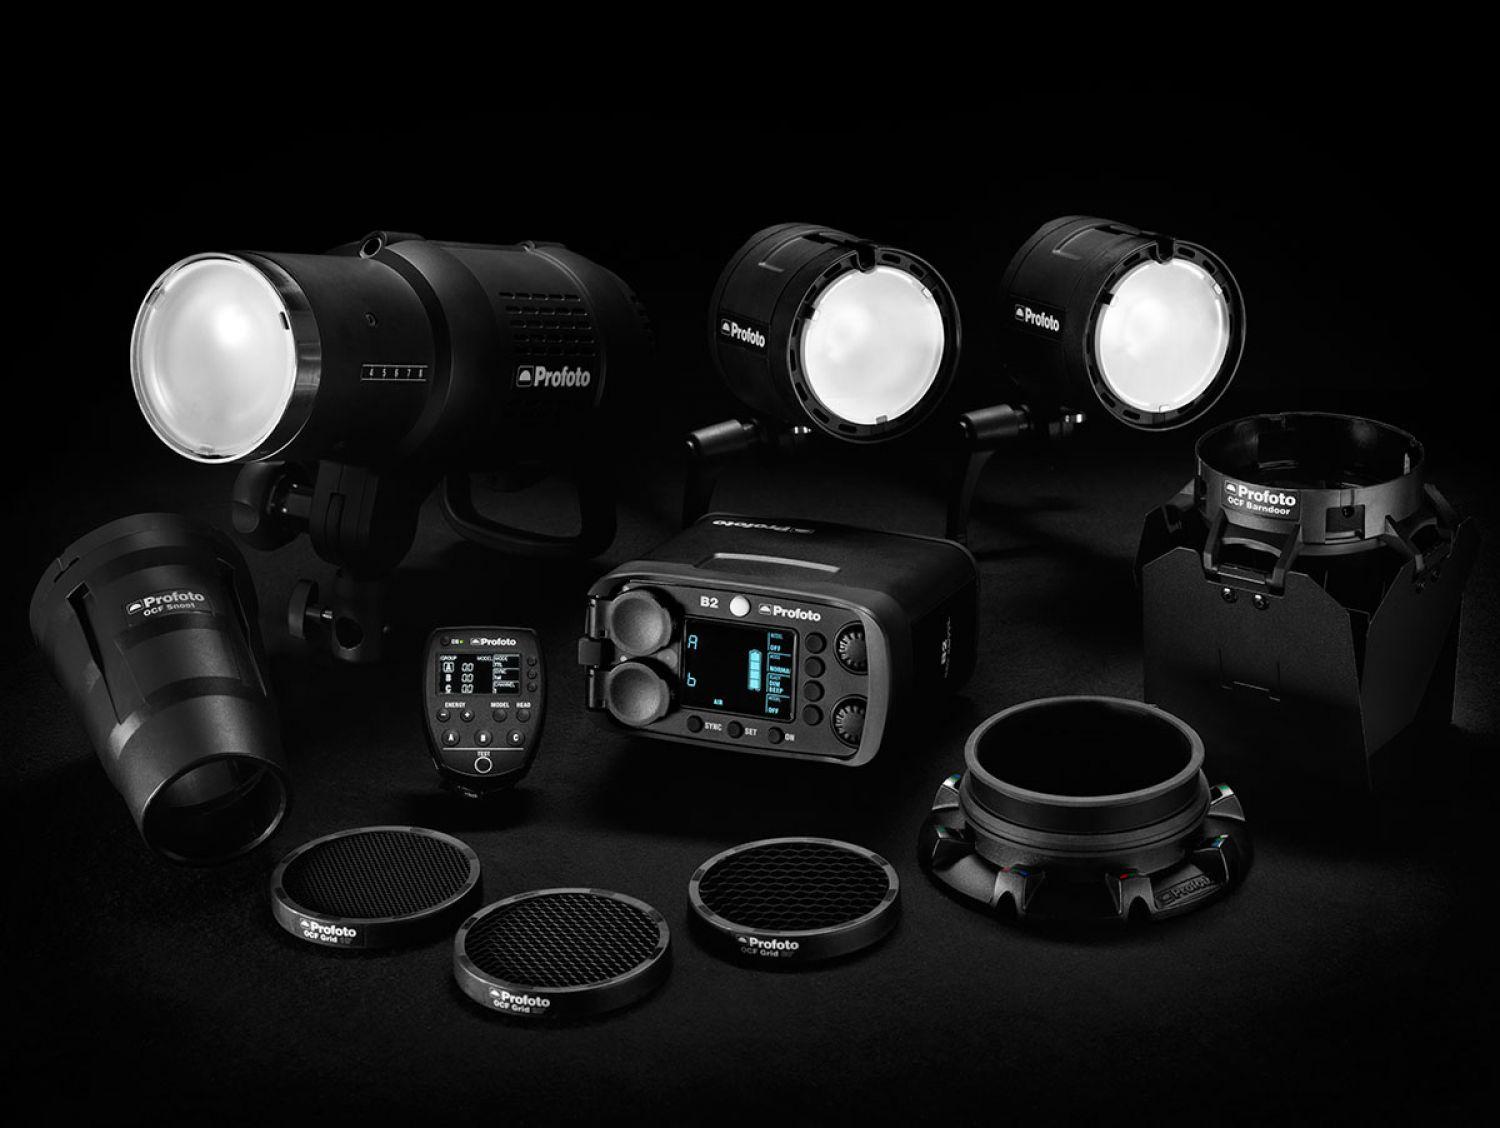 The new Profoto Off-Camera Flash system